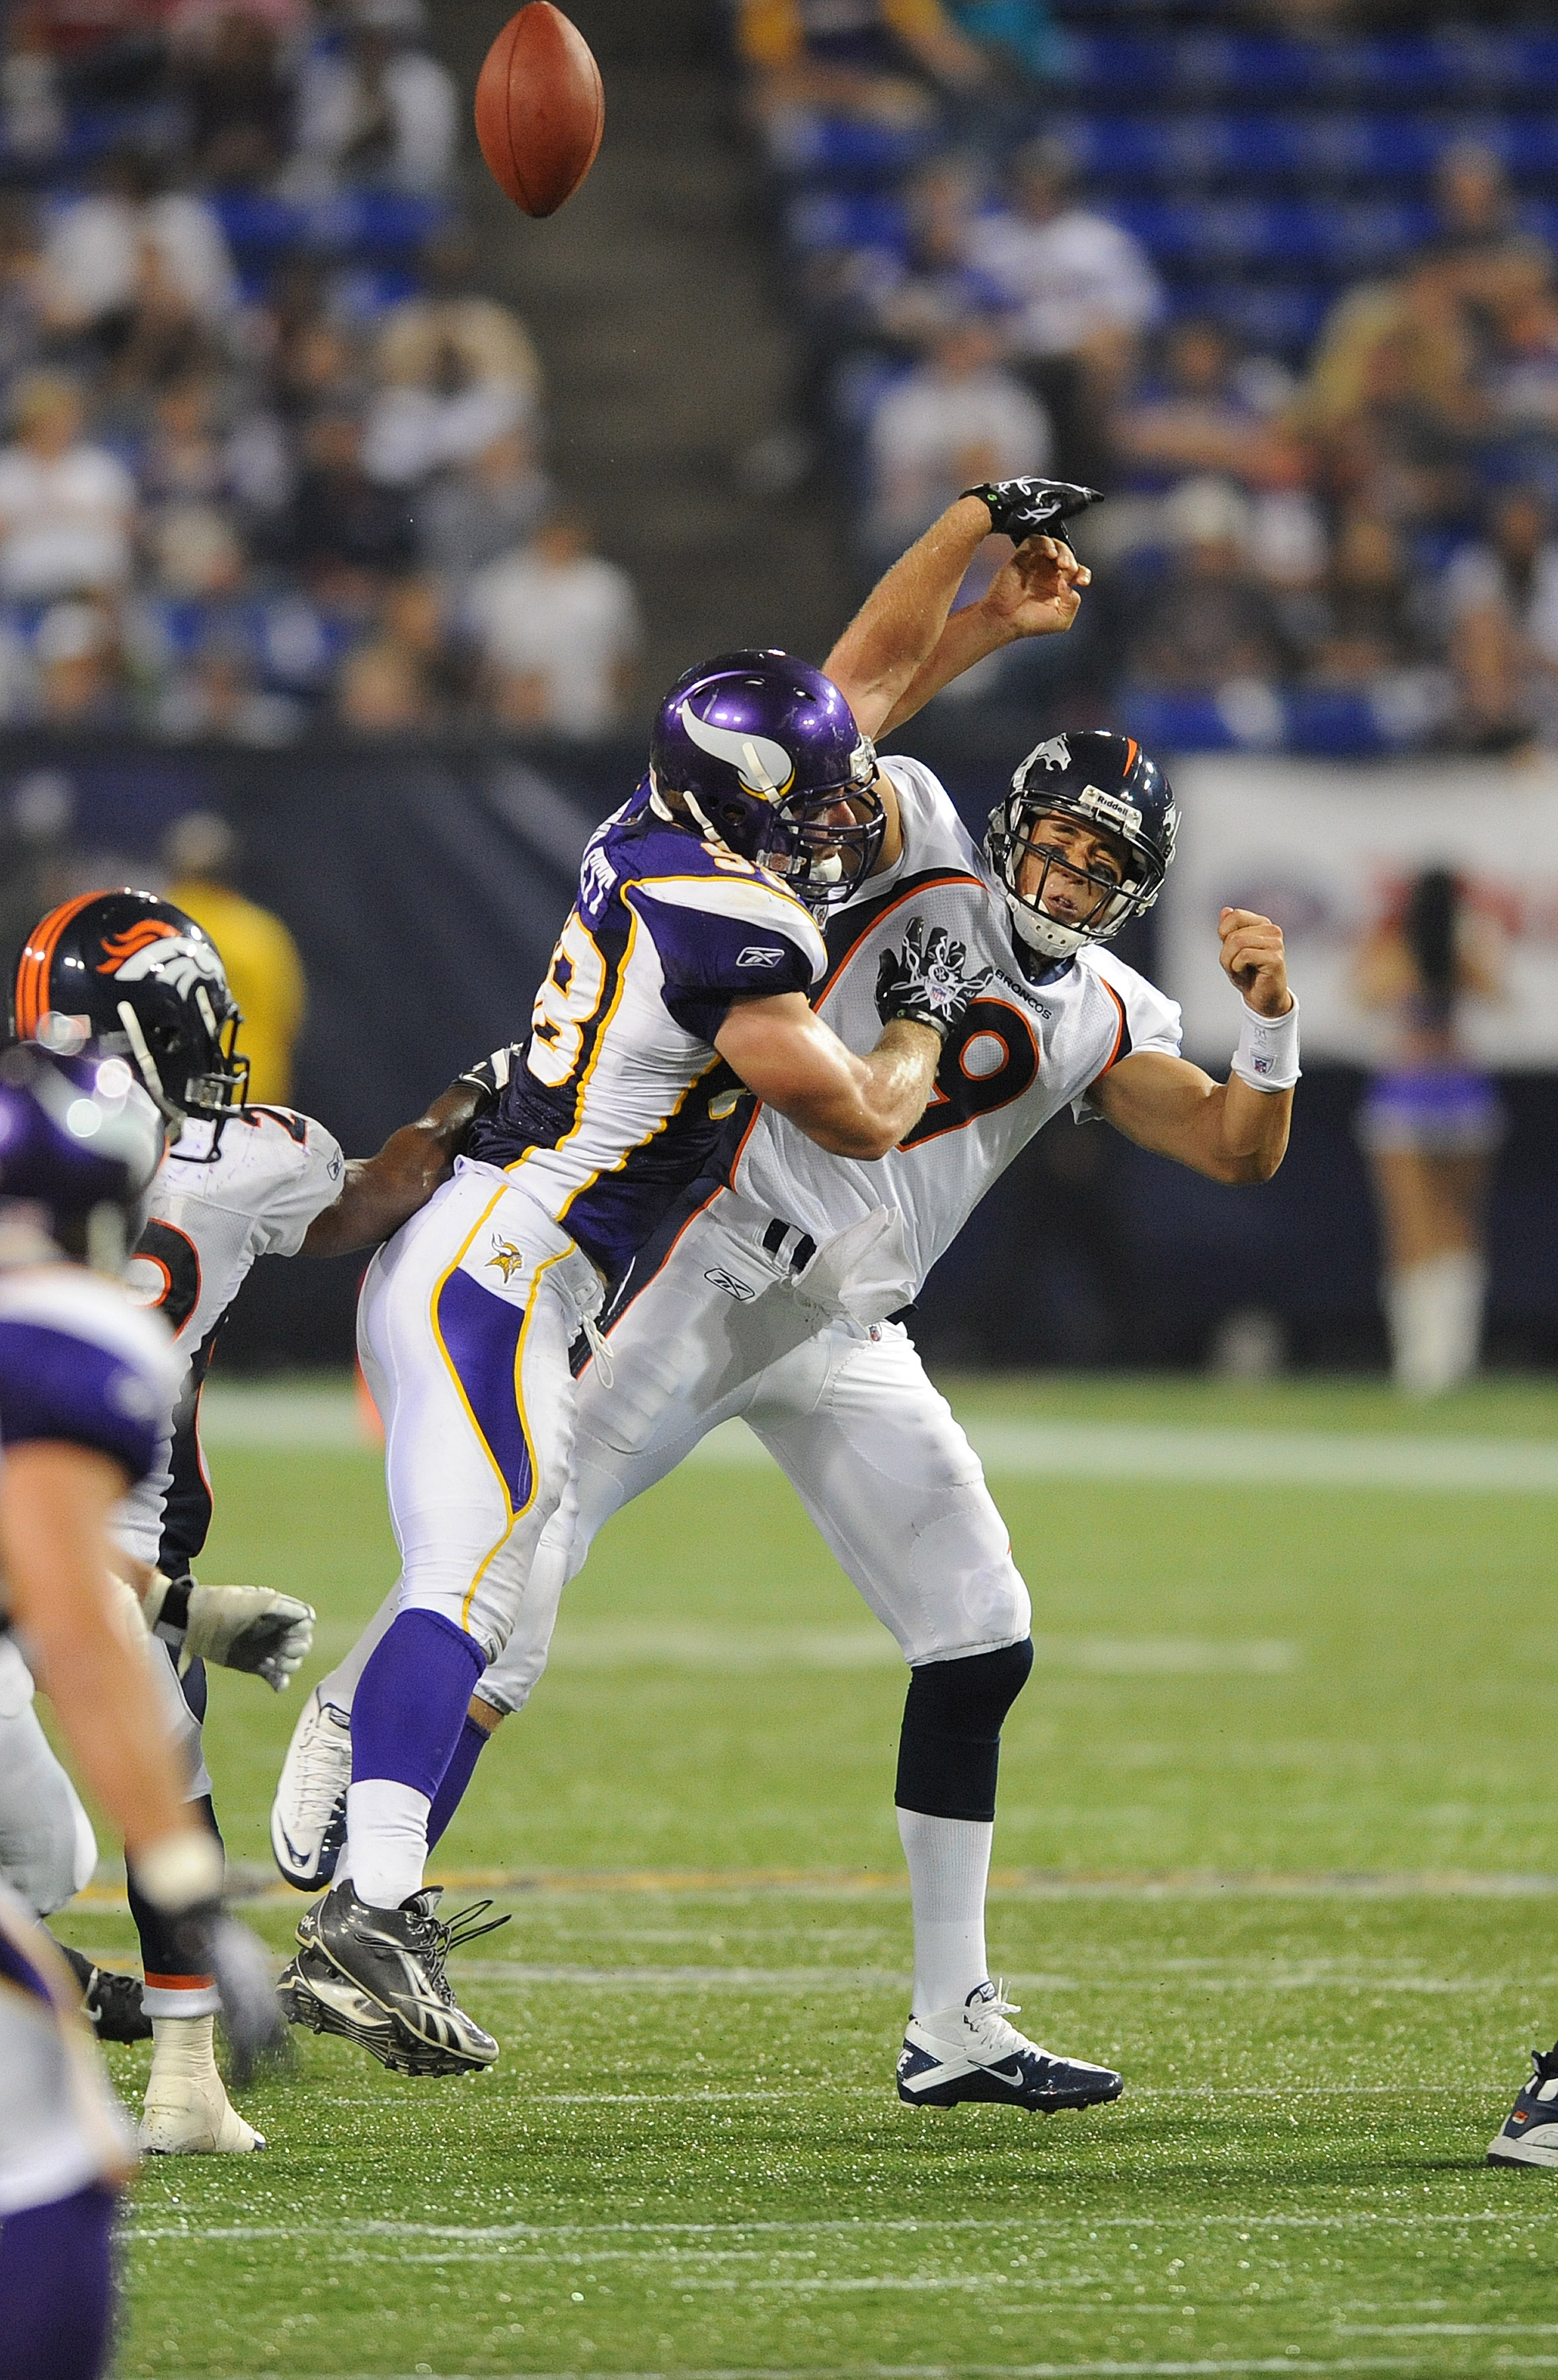 MINNEAPOLIS - SEPTEMBER 02:  Brady Quinn #9 of the Denver Broncos passes the ball as Nate Triplett #58 of the Minnesota Vikings defends during an NFL preseason game at the Mall of America Field at Hubert H. Humphrey Metrodome, on September 2, 2010 in Minn